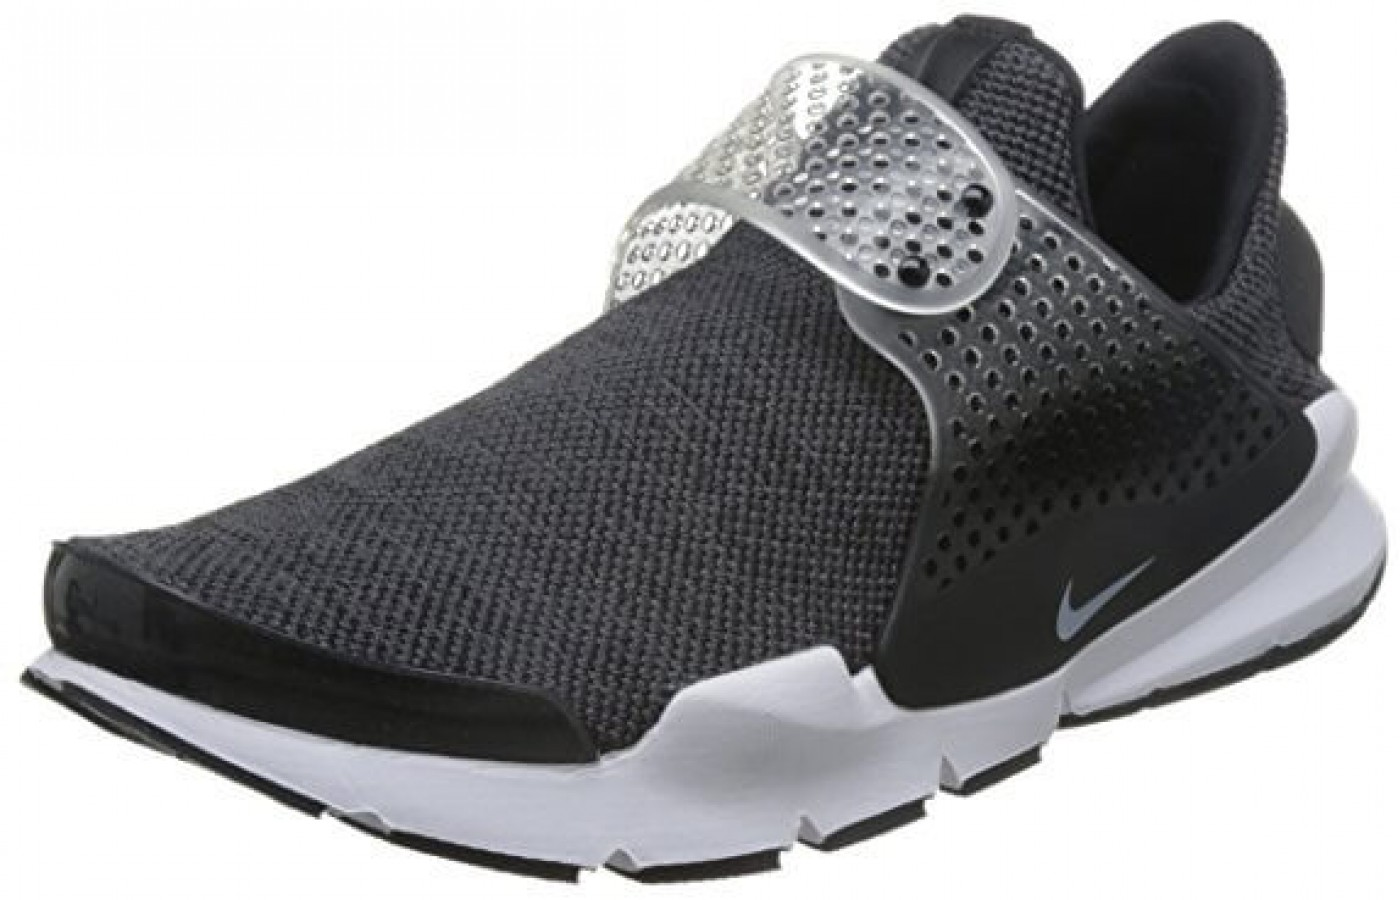 The Nike Sock Dart SE Premium angled front perspective